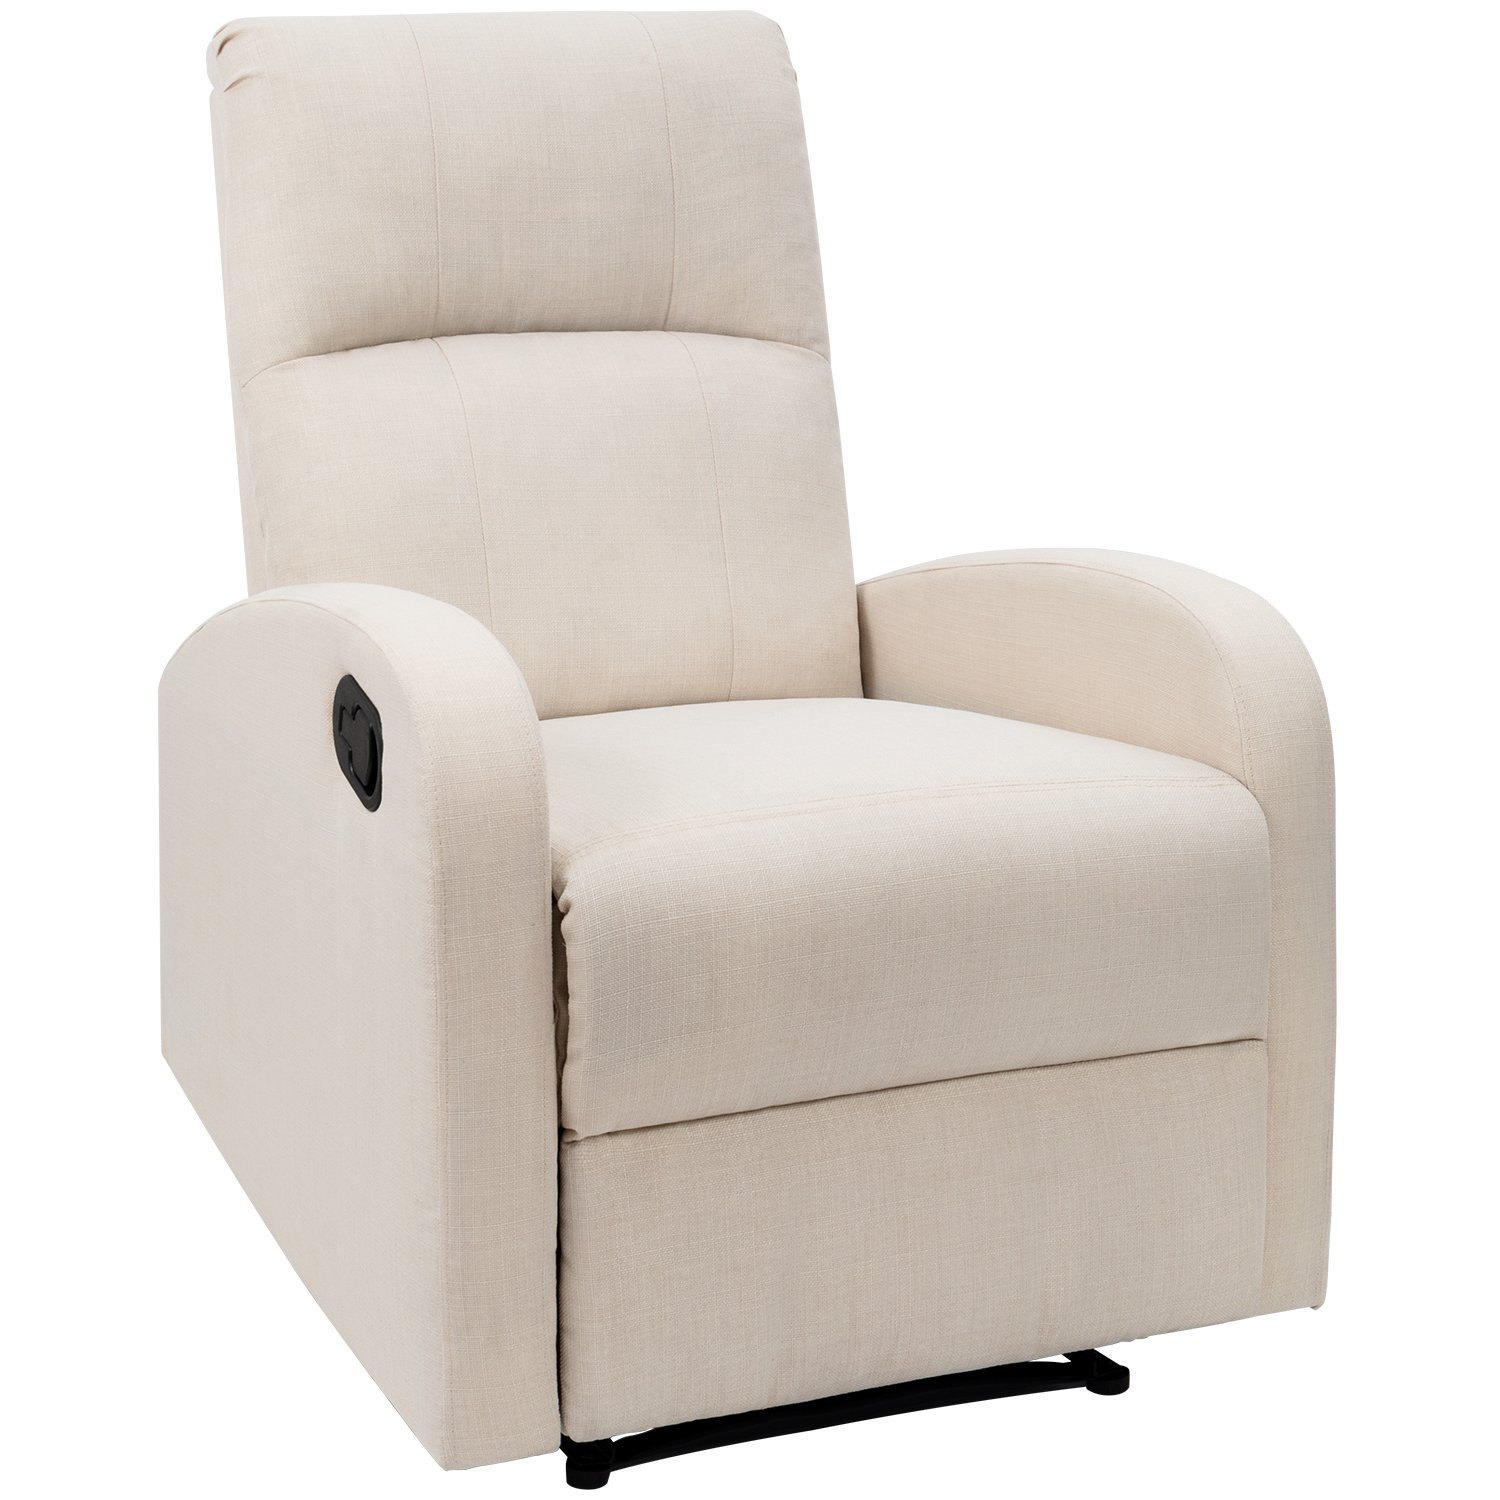 Best Rated In Home Theater Seating Helpful Customer Reviews